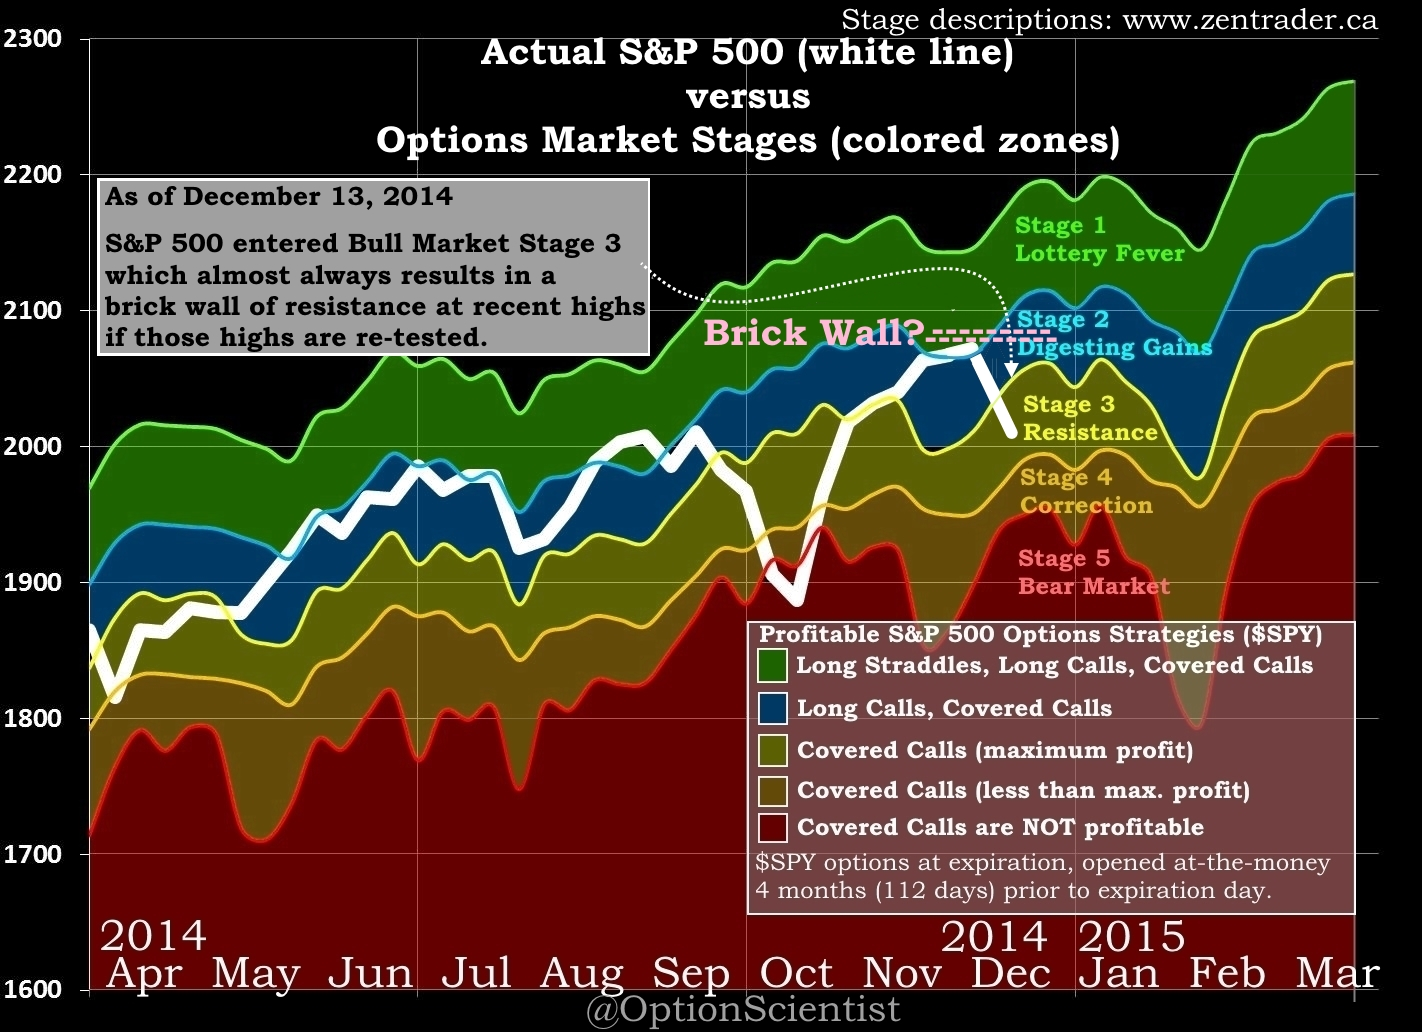 Percentage stock options expire worthless